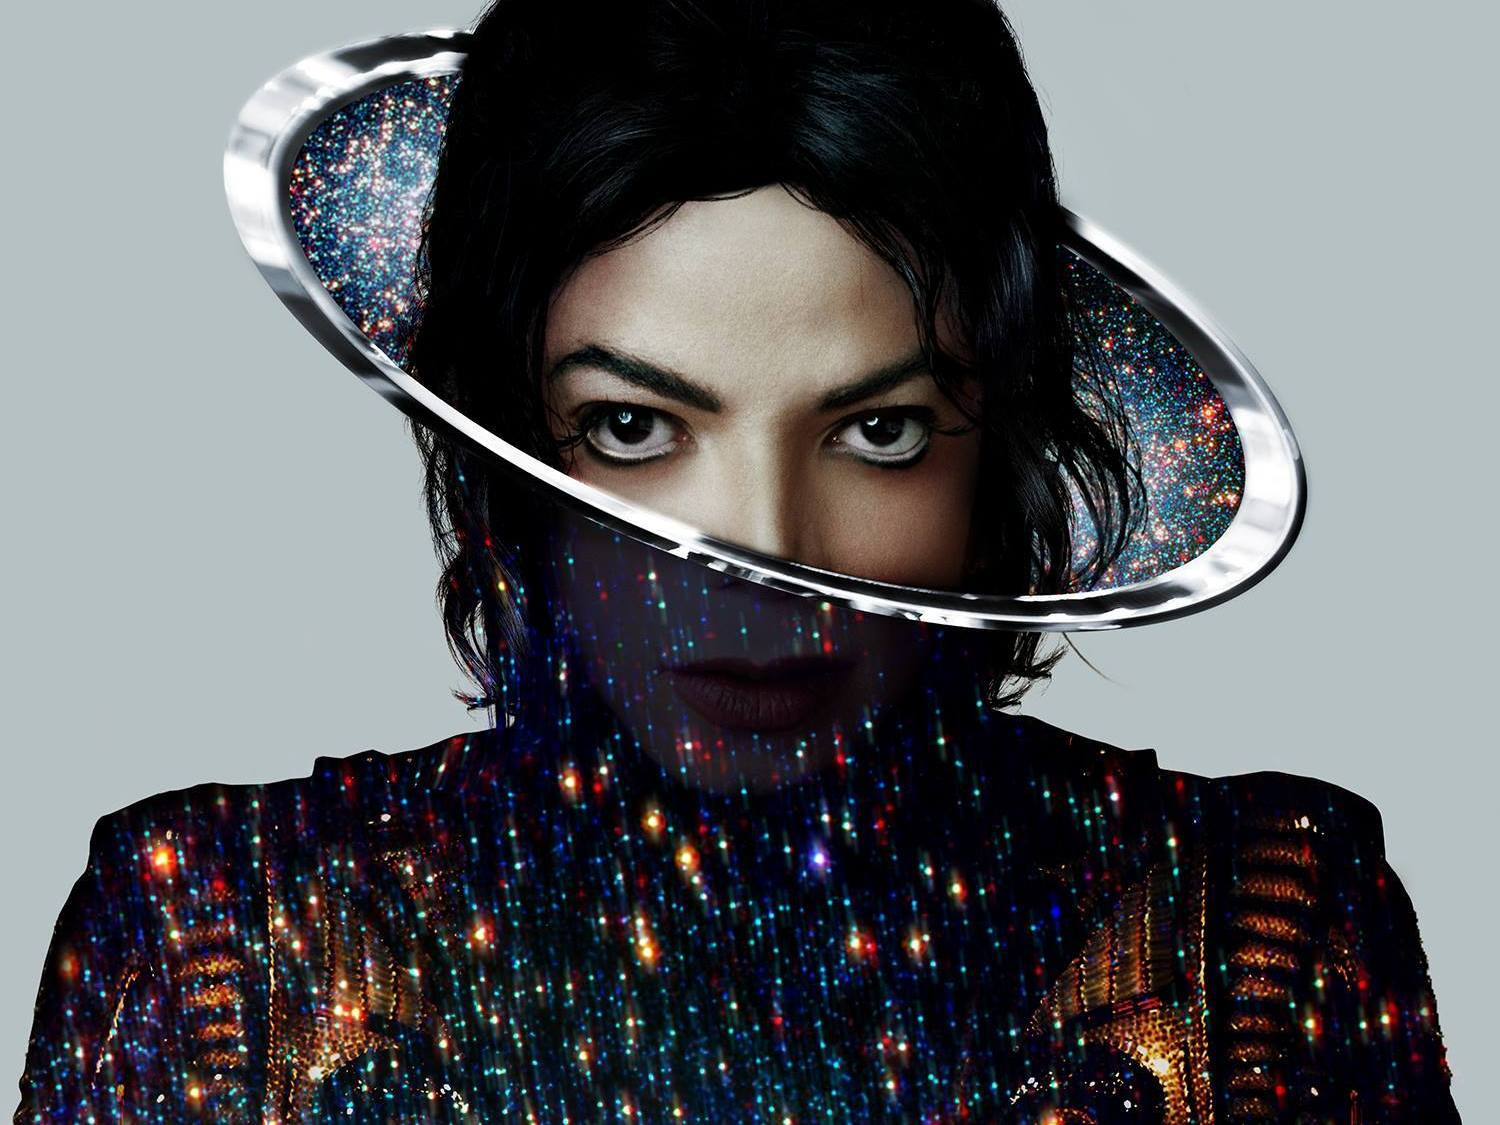 Is The 'Xscape' Deluxe Version Worth It? 3 Words: Michael Jackson Demos